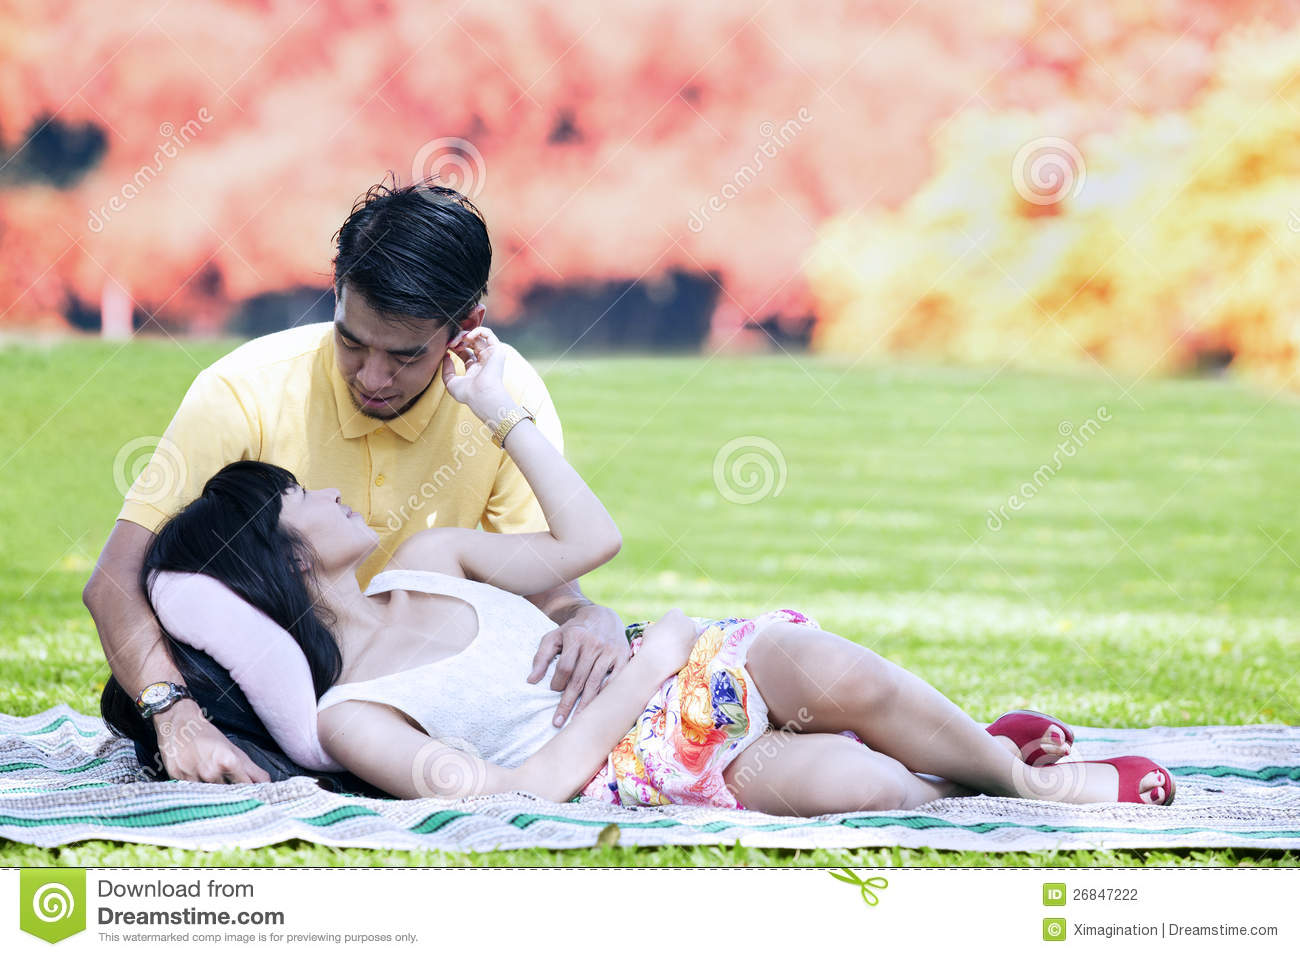 Park bench dating download games 2